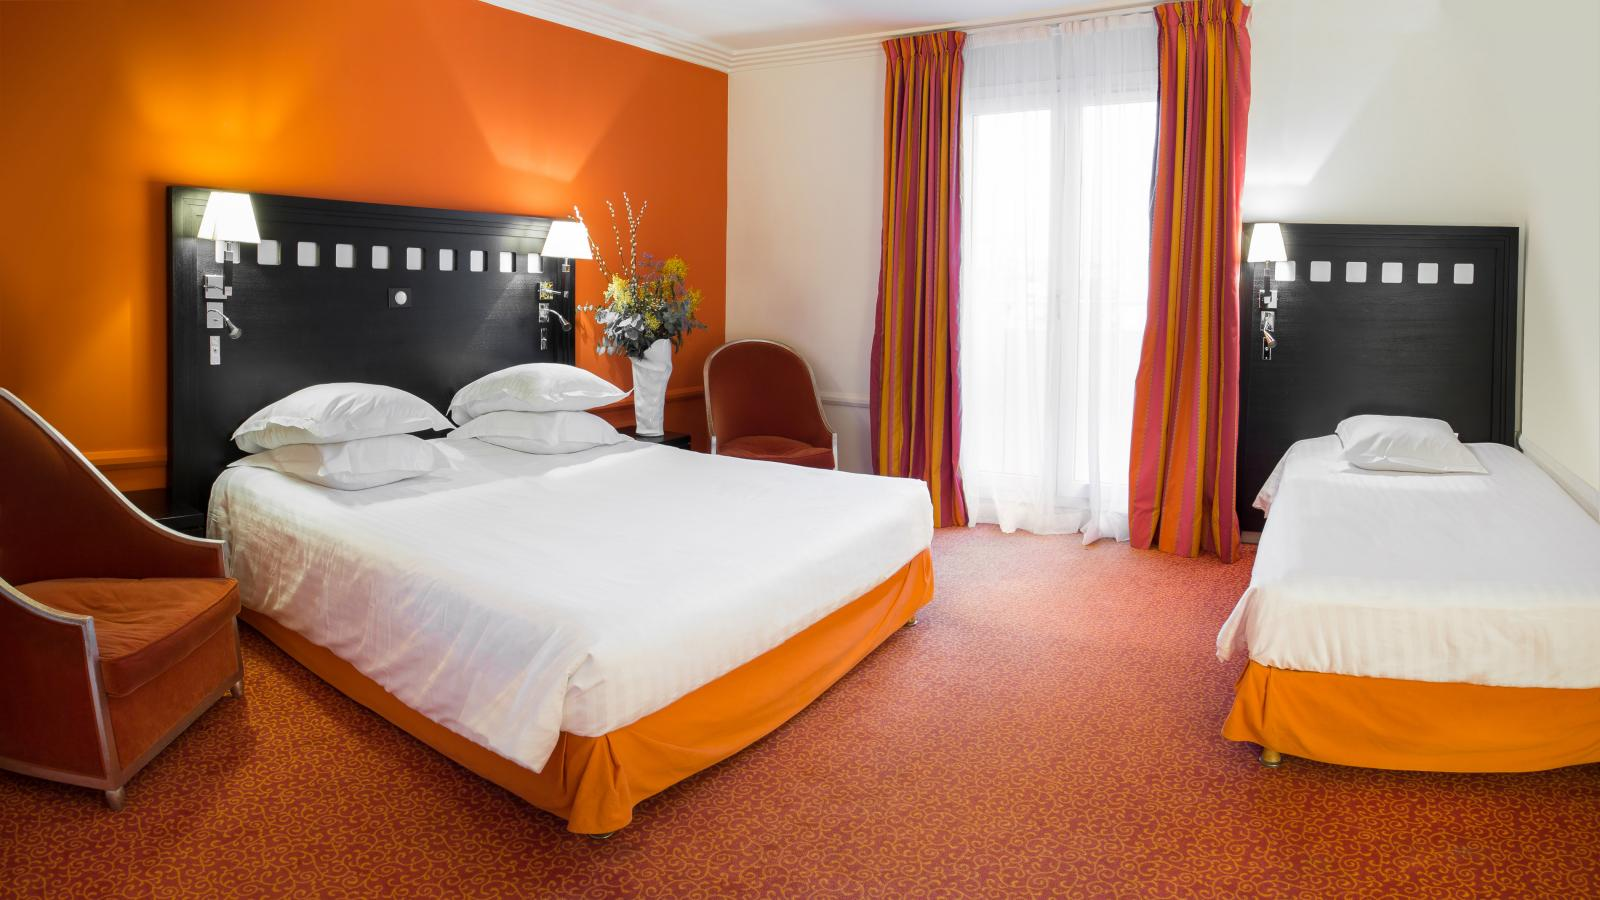 Hotel Spa Biarritz Pas Cher